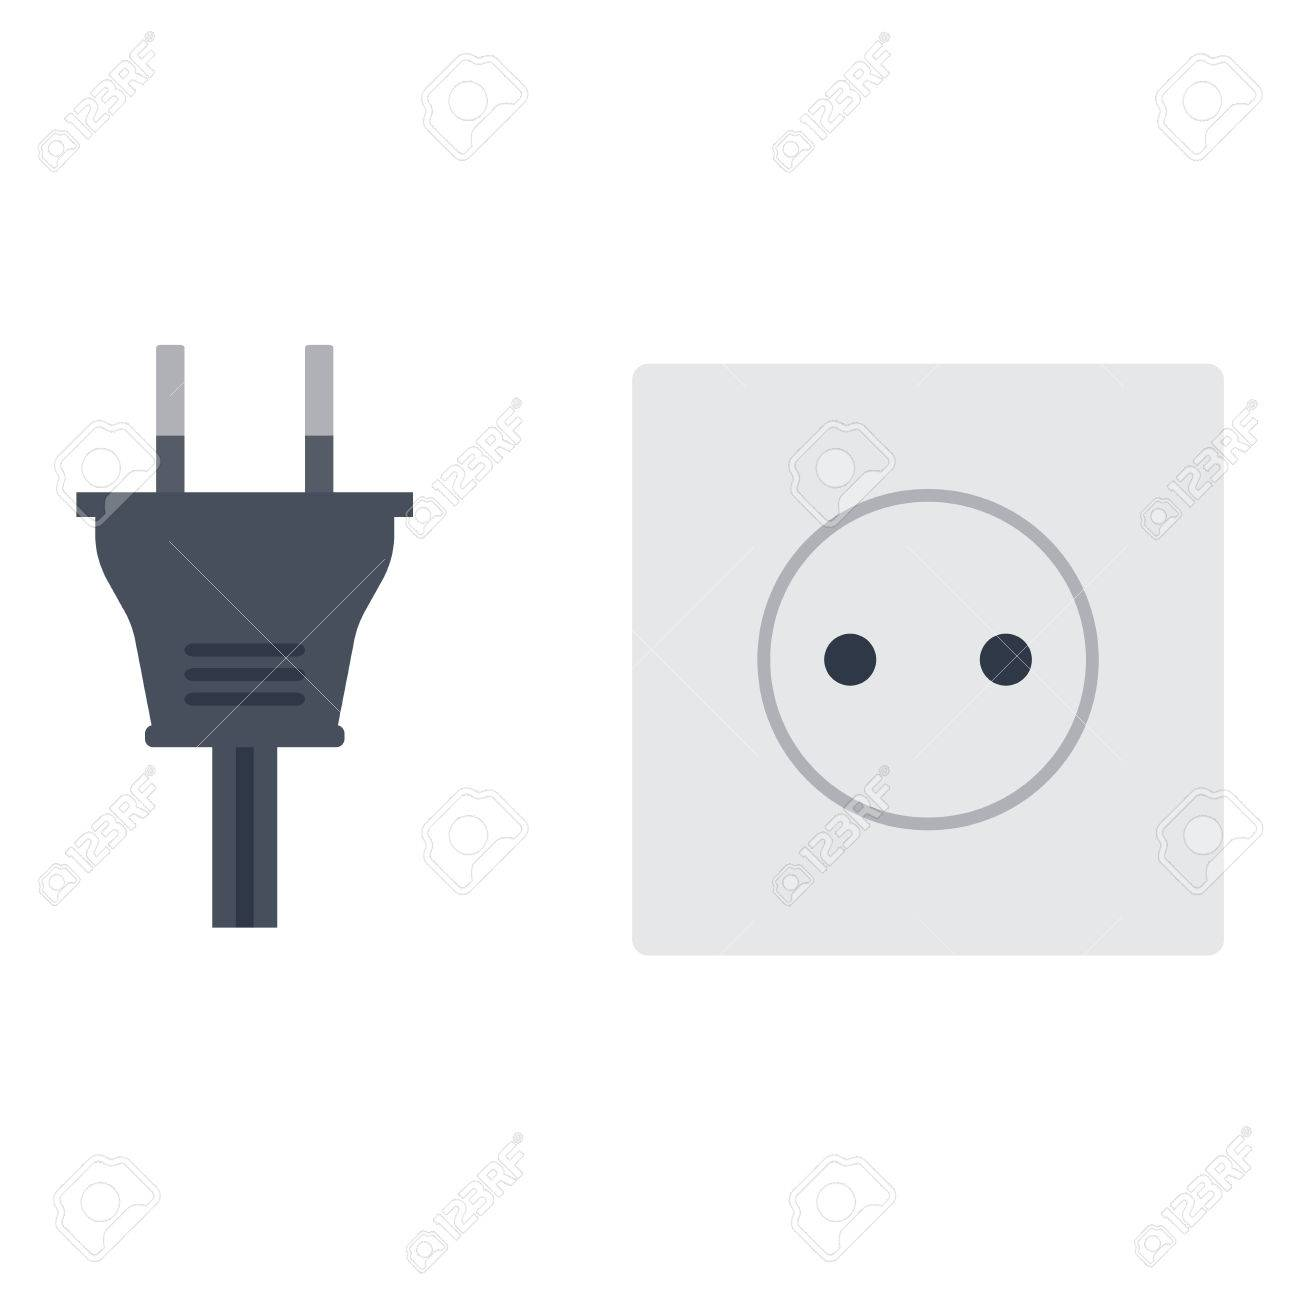 Electric outlet illustration on white background. Energy socket.. on installing a new electrical outlet, basic electrical wiring, open neutral in electrical wiring, electrical plug, electrical generator, electrical wall outlets, new electrical wiring, circuit breaker wiring, electrical wiring installation, electrical store, electrical socket, roughing in electrical wiring, electrical switches wiring, electrical receptacles, scary electrical wiring, electrical panel wiring, exterior electrical wiring, electrical muscle stimulator, electrical safety, replacing electrical outlets, electrical suppliers, electrical estimating, electrical troubleshooting, electrical tests, electrical switch wiring, electrical wiring diagram, electrical install, electrical wiring in north america, electrical work, home wiring, electrical stimulator, electrical standards, outlet switch, british electrical wiring, electrical retail, electrical motor, residential electrical wiring, bad electrical wiring, electrical lighting wiring,